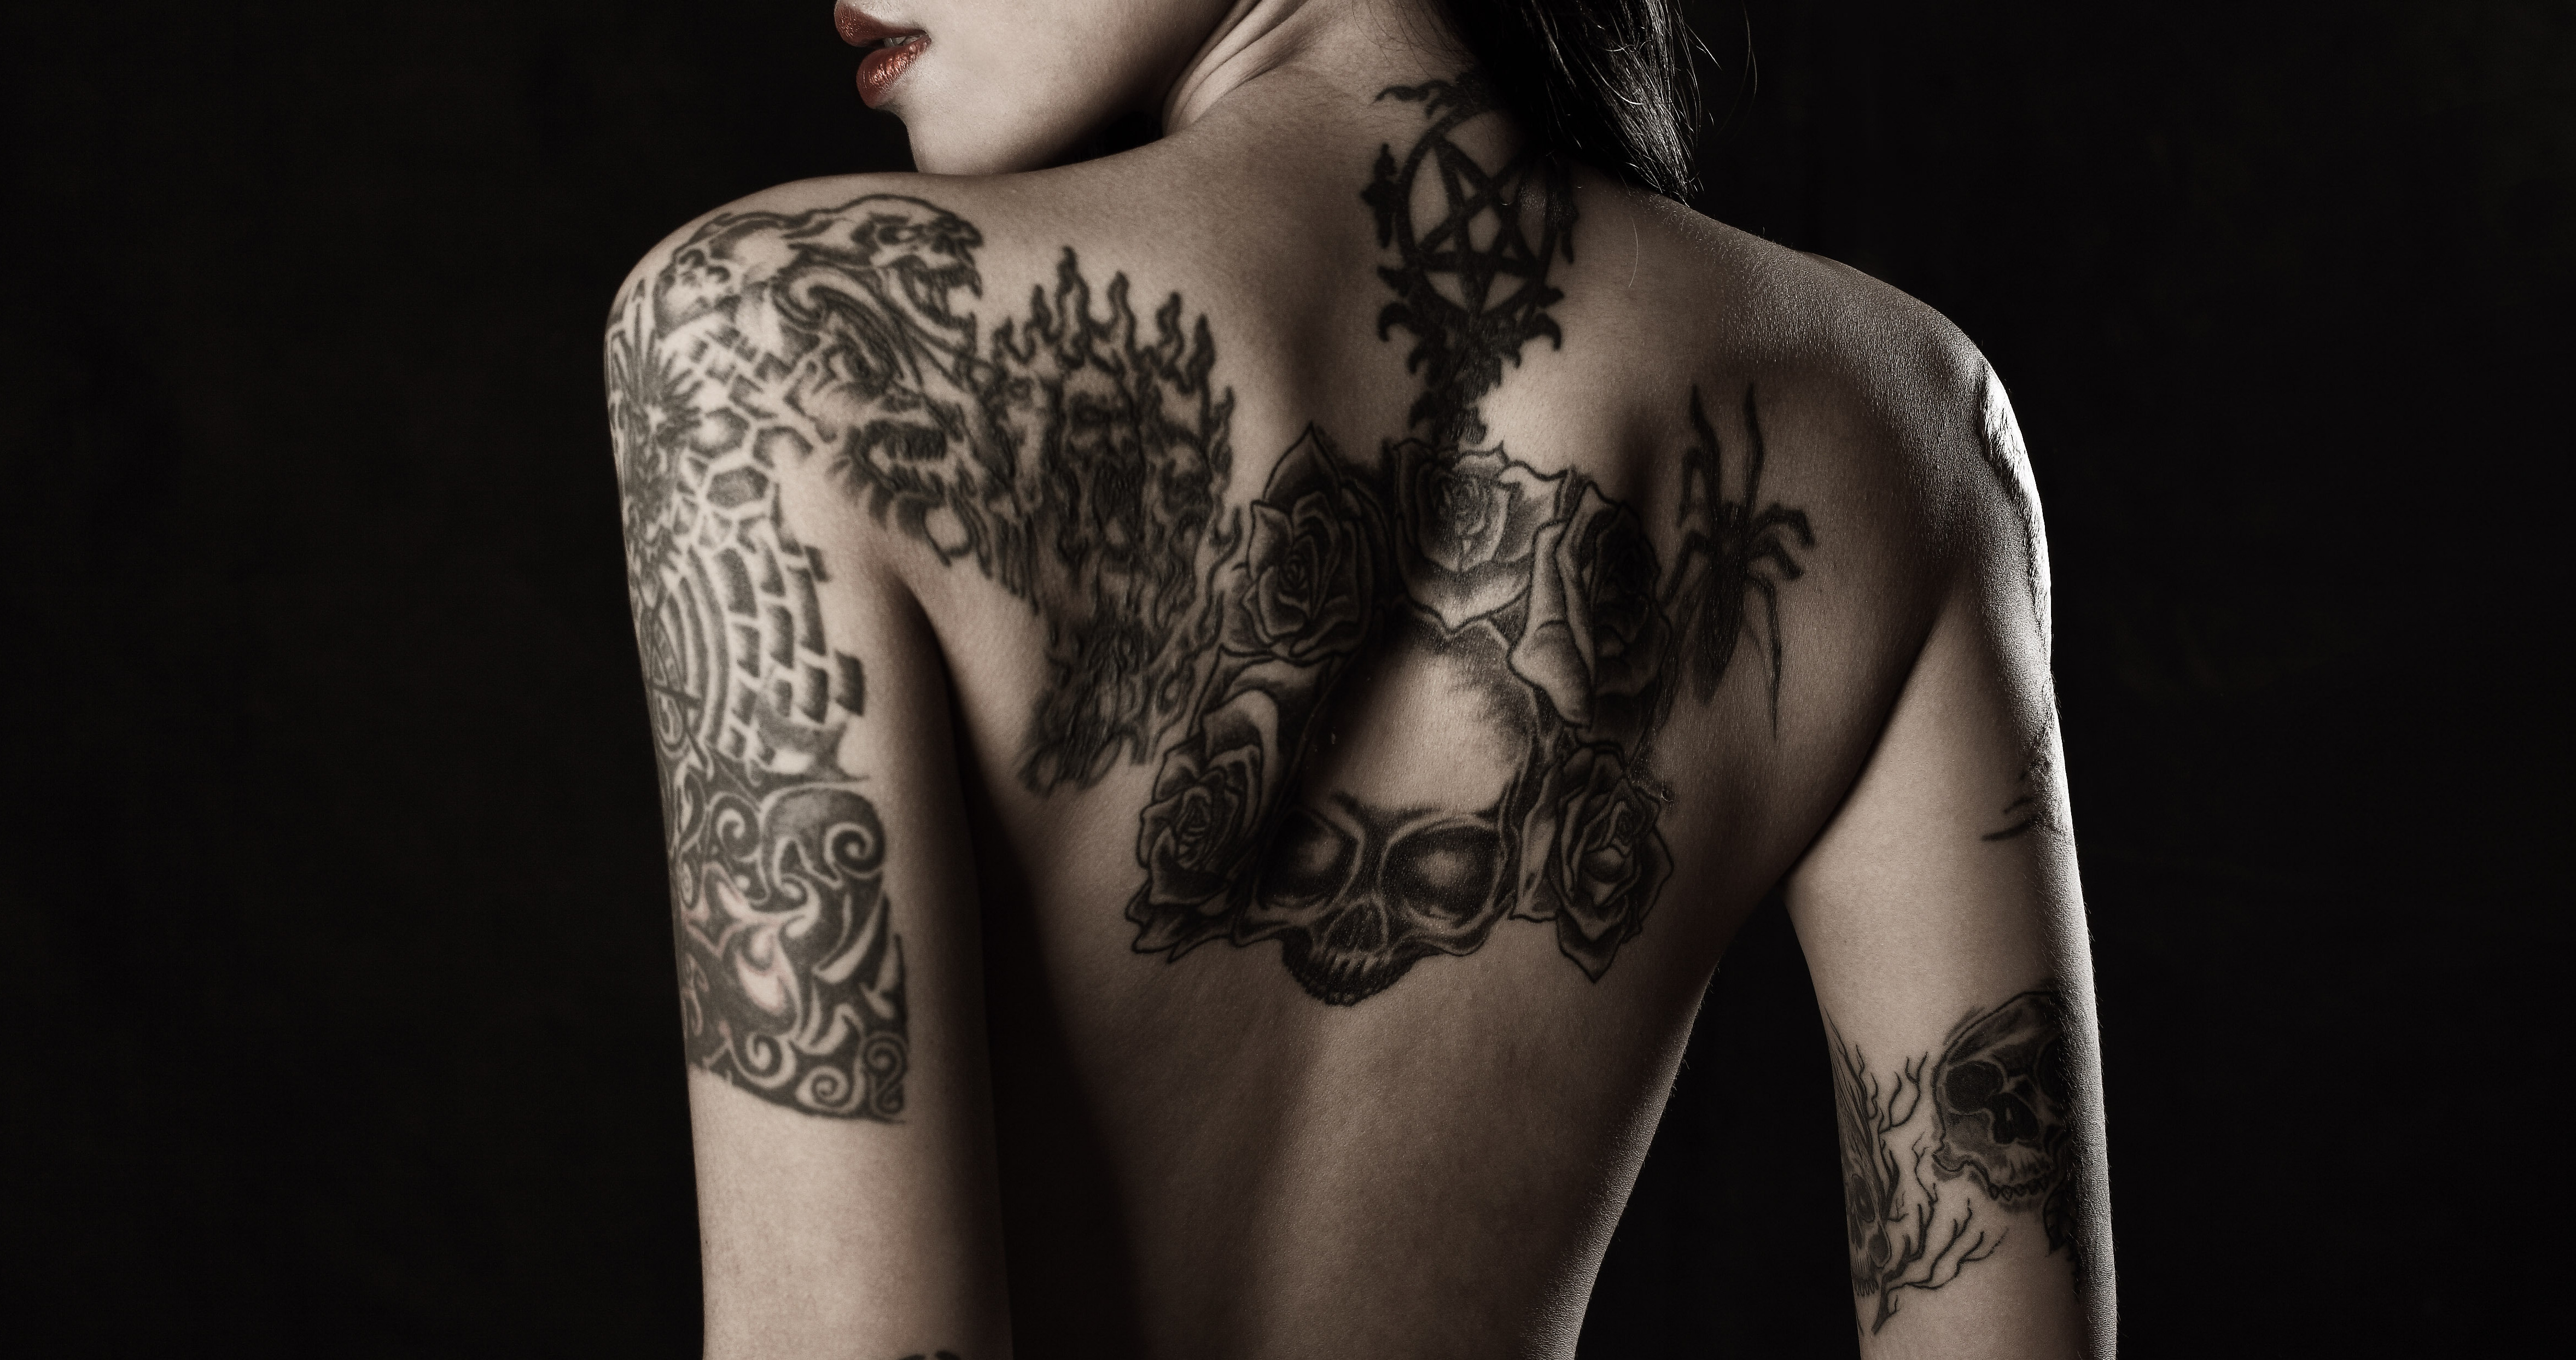 Images of Woman's Back Tattoo - #rock-cafe